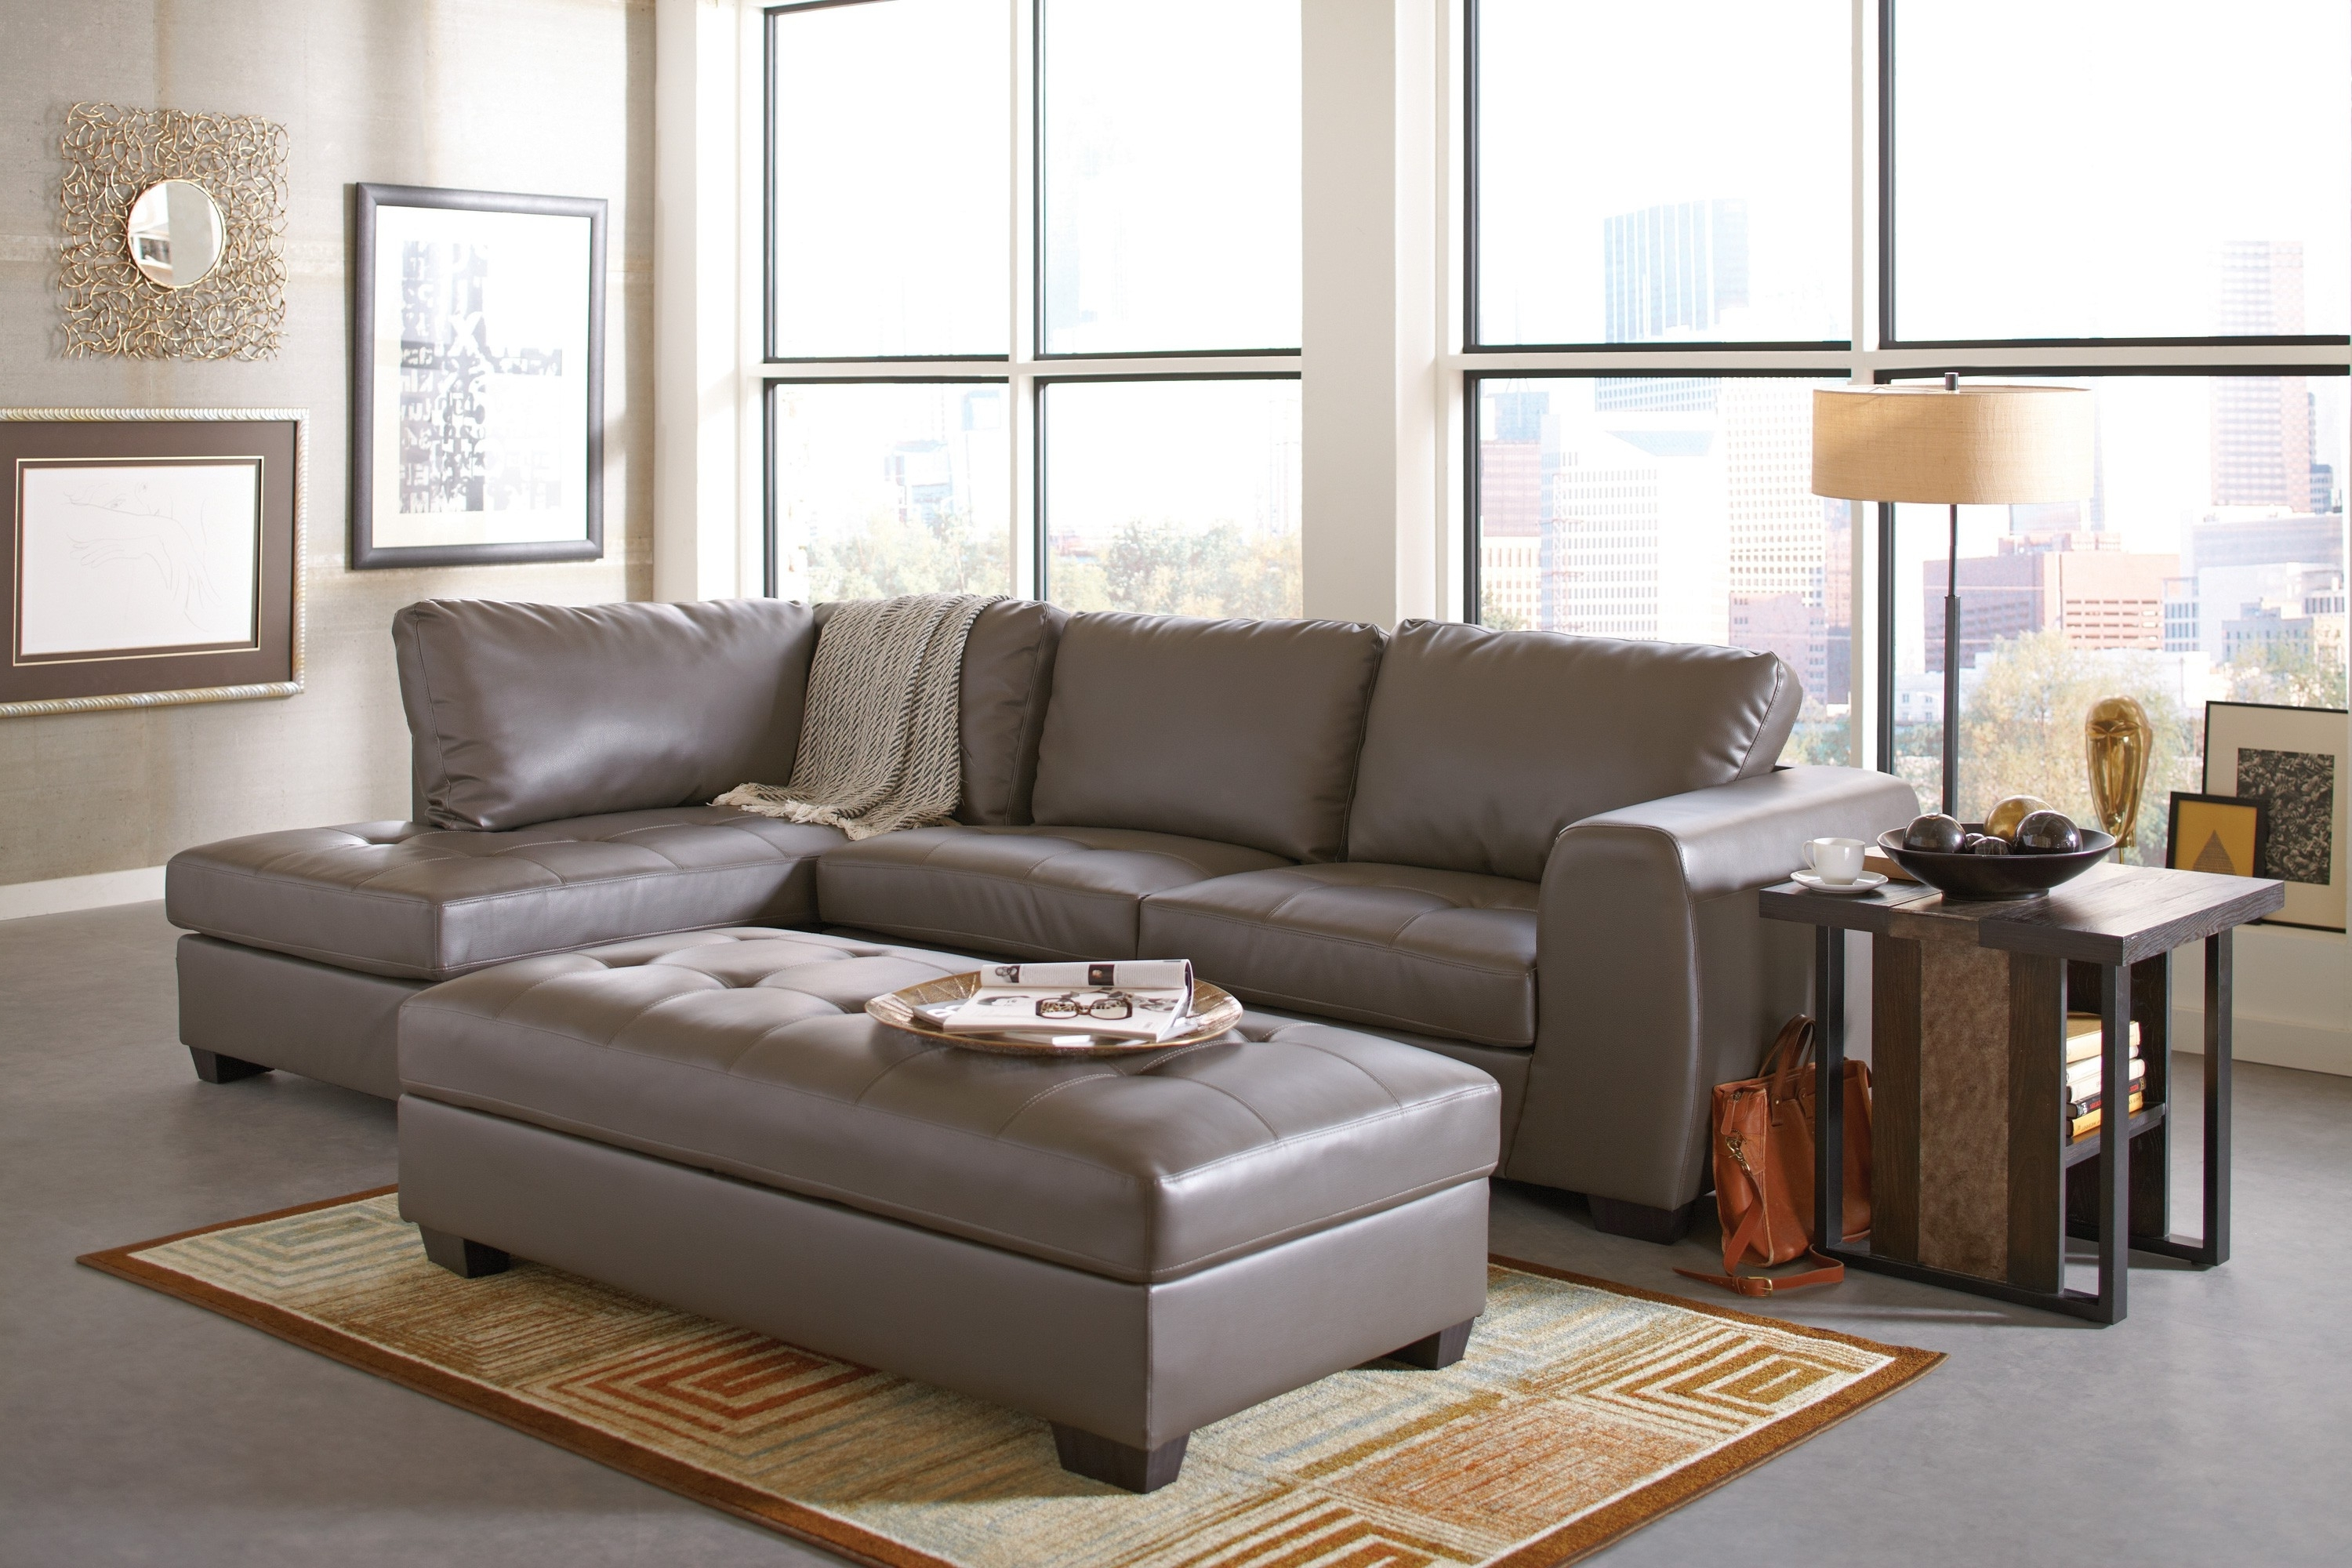 Elegant Sectional Sofa Under 200 – Buildsimplehome Pertaining To Most Up To Date Sectional Sofas Under  (View 4 of 20)